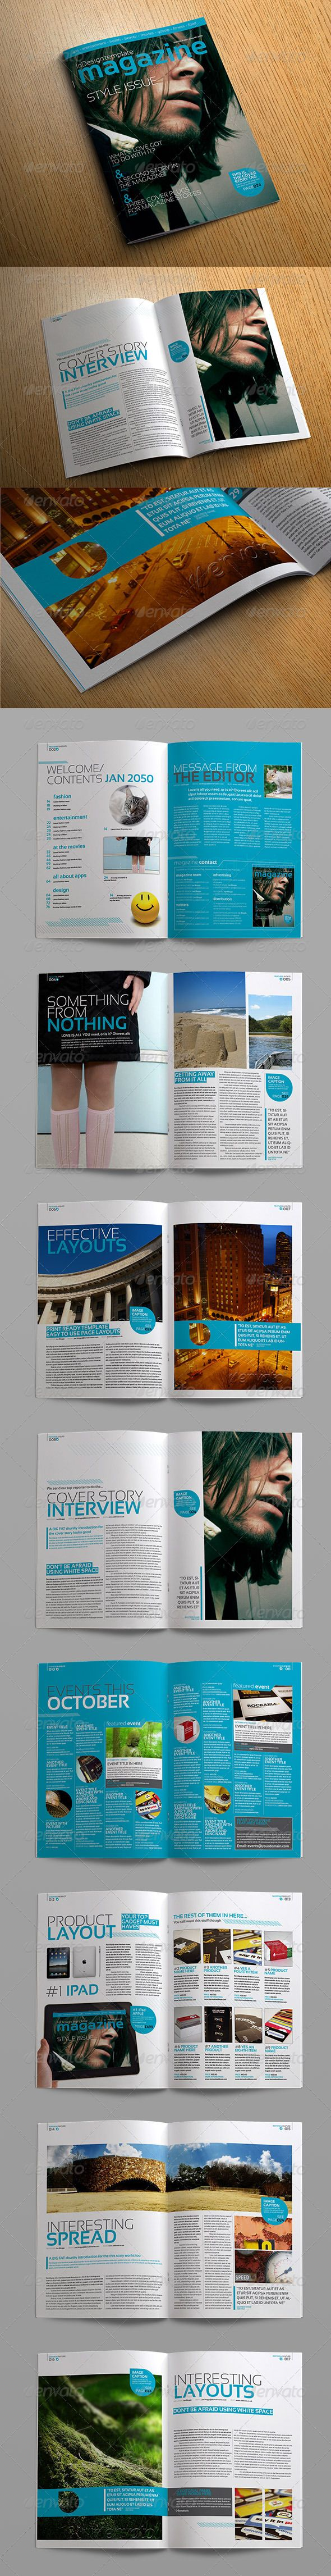 Stylish InDesign Magazine Template by CRSDesign Stylish and elegant InDesign magazine template. The design has a great selection of high quality page layouts, giving you a docum